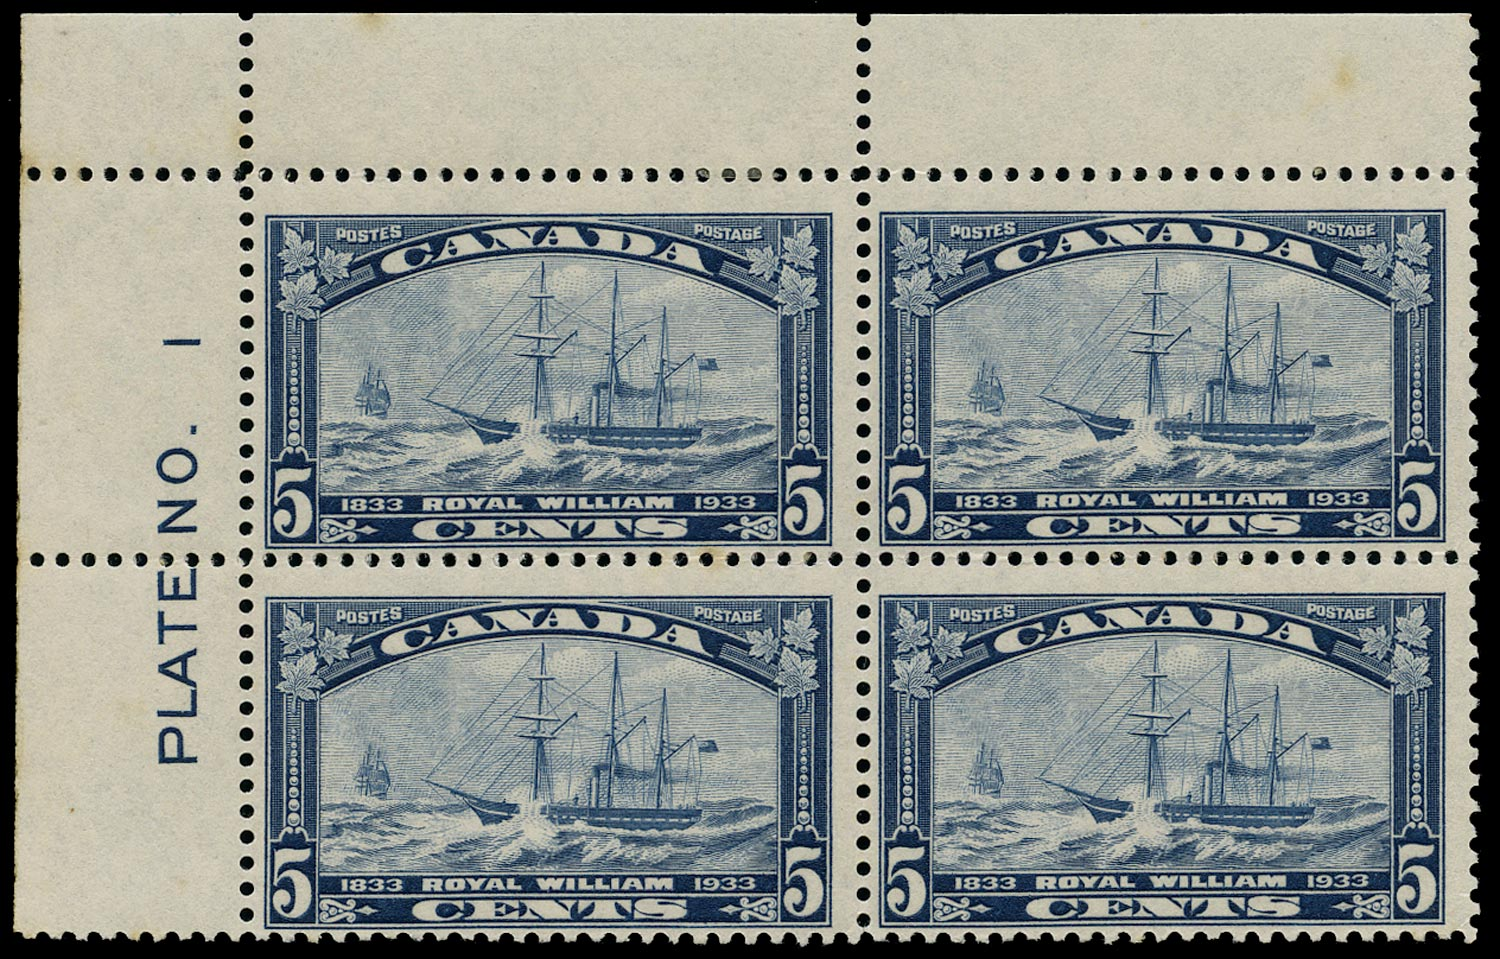 CANADA 1933  SG331 Mint 5c blue Royal William plate number block